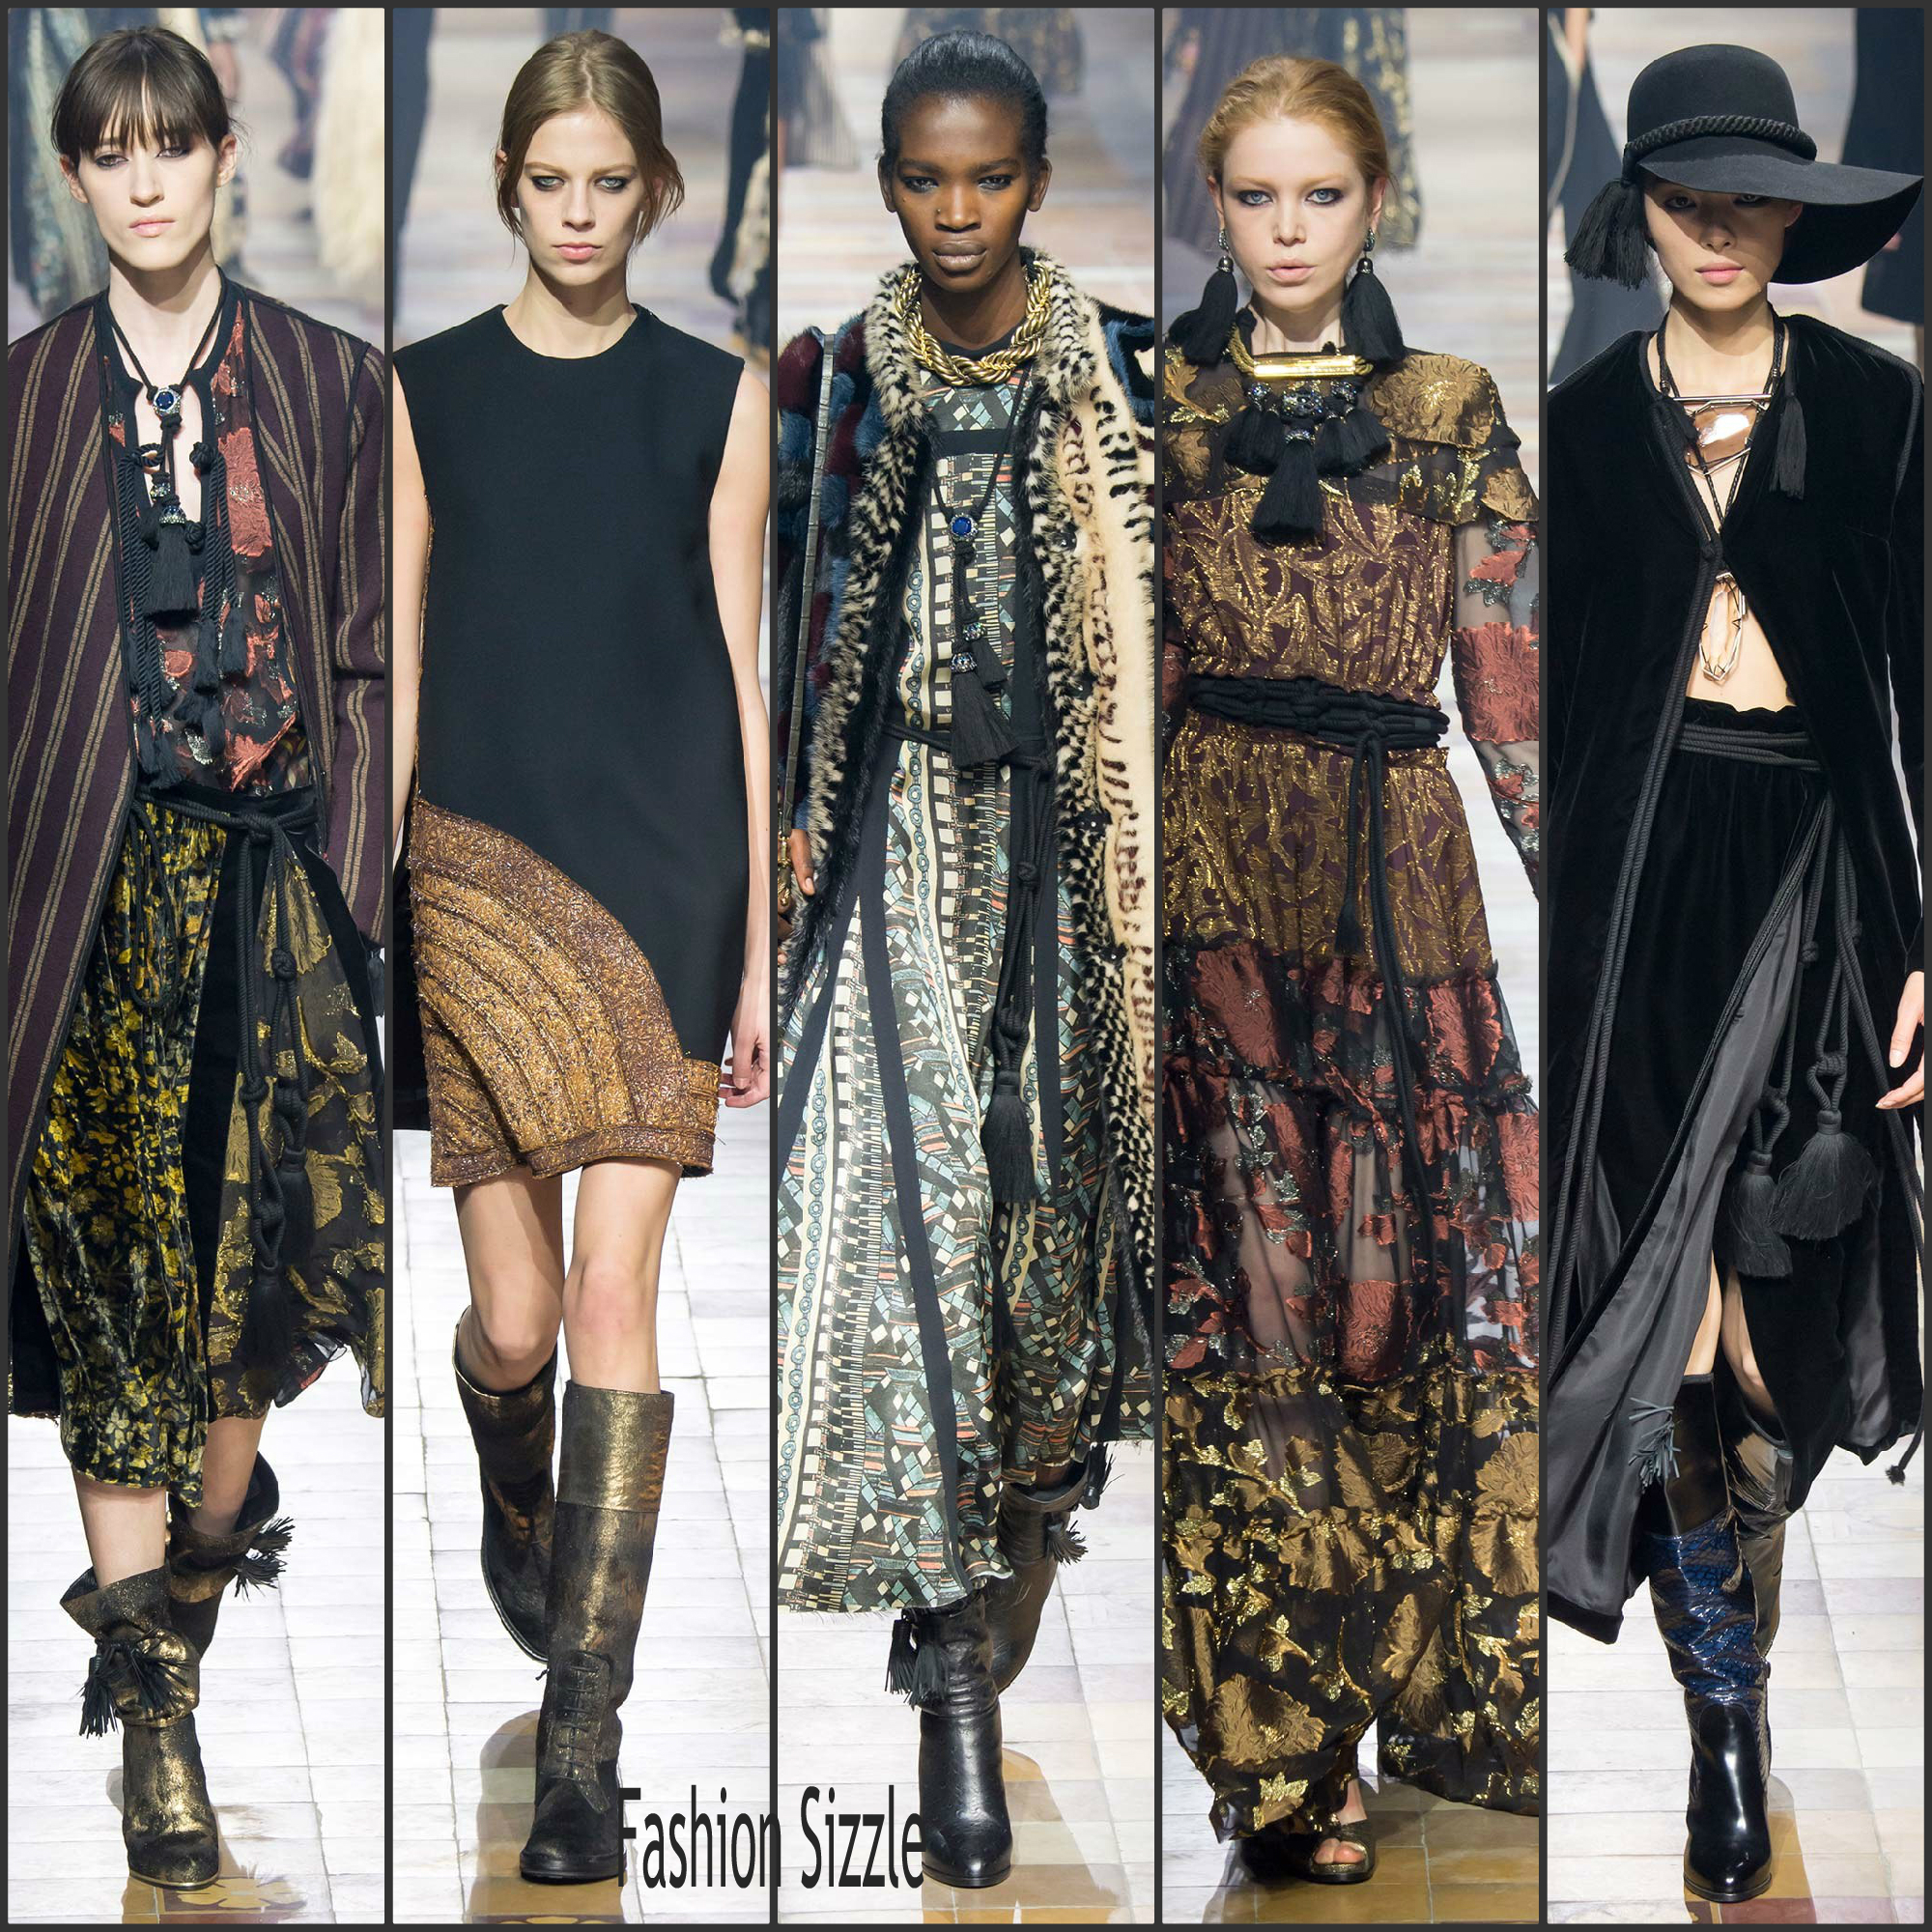 Fall Trends 2015 60s Hippie And Mod Fashion Fashionsizzle